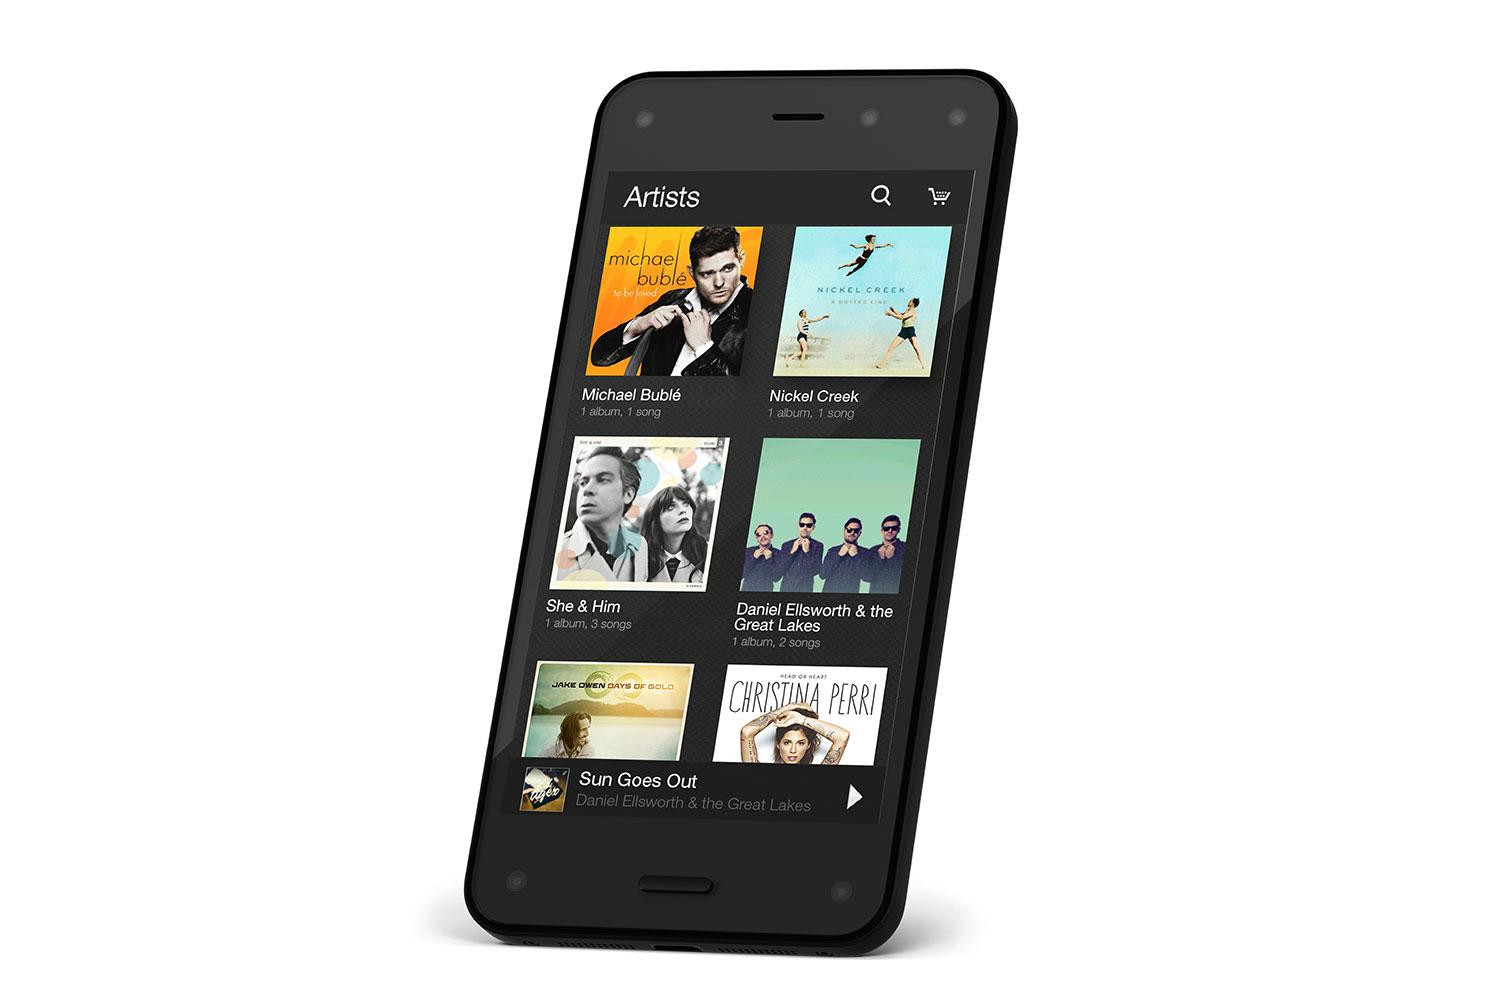 1403258951_amazon-fire-phone-music-library.jpg